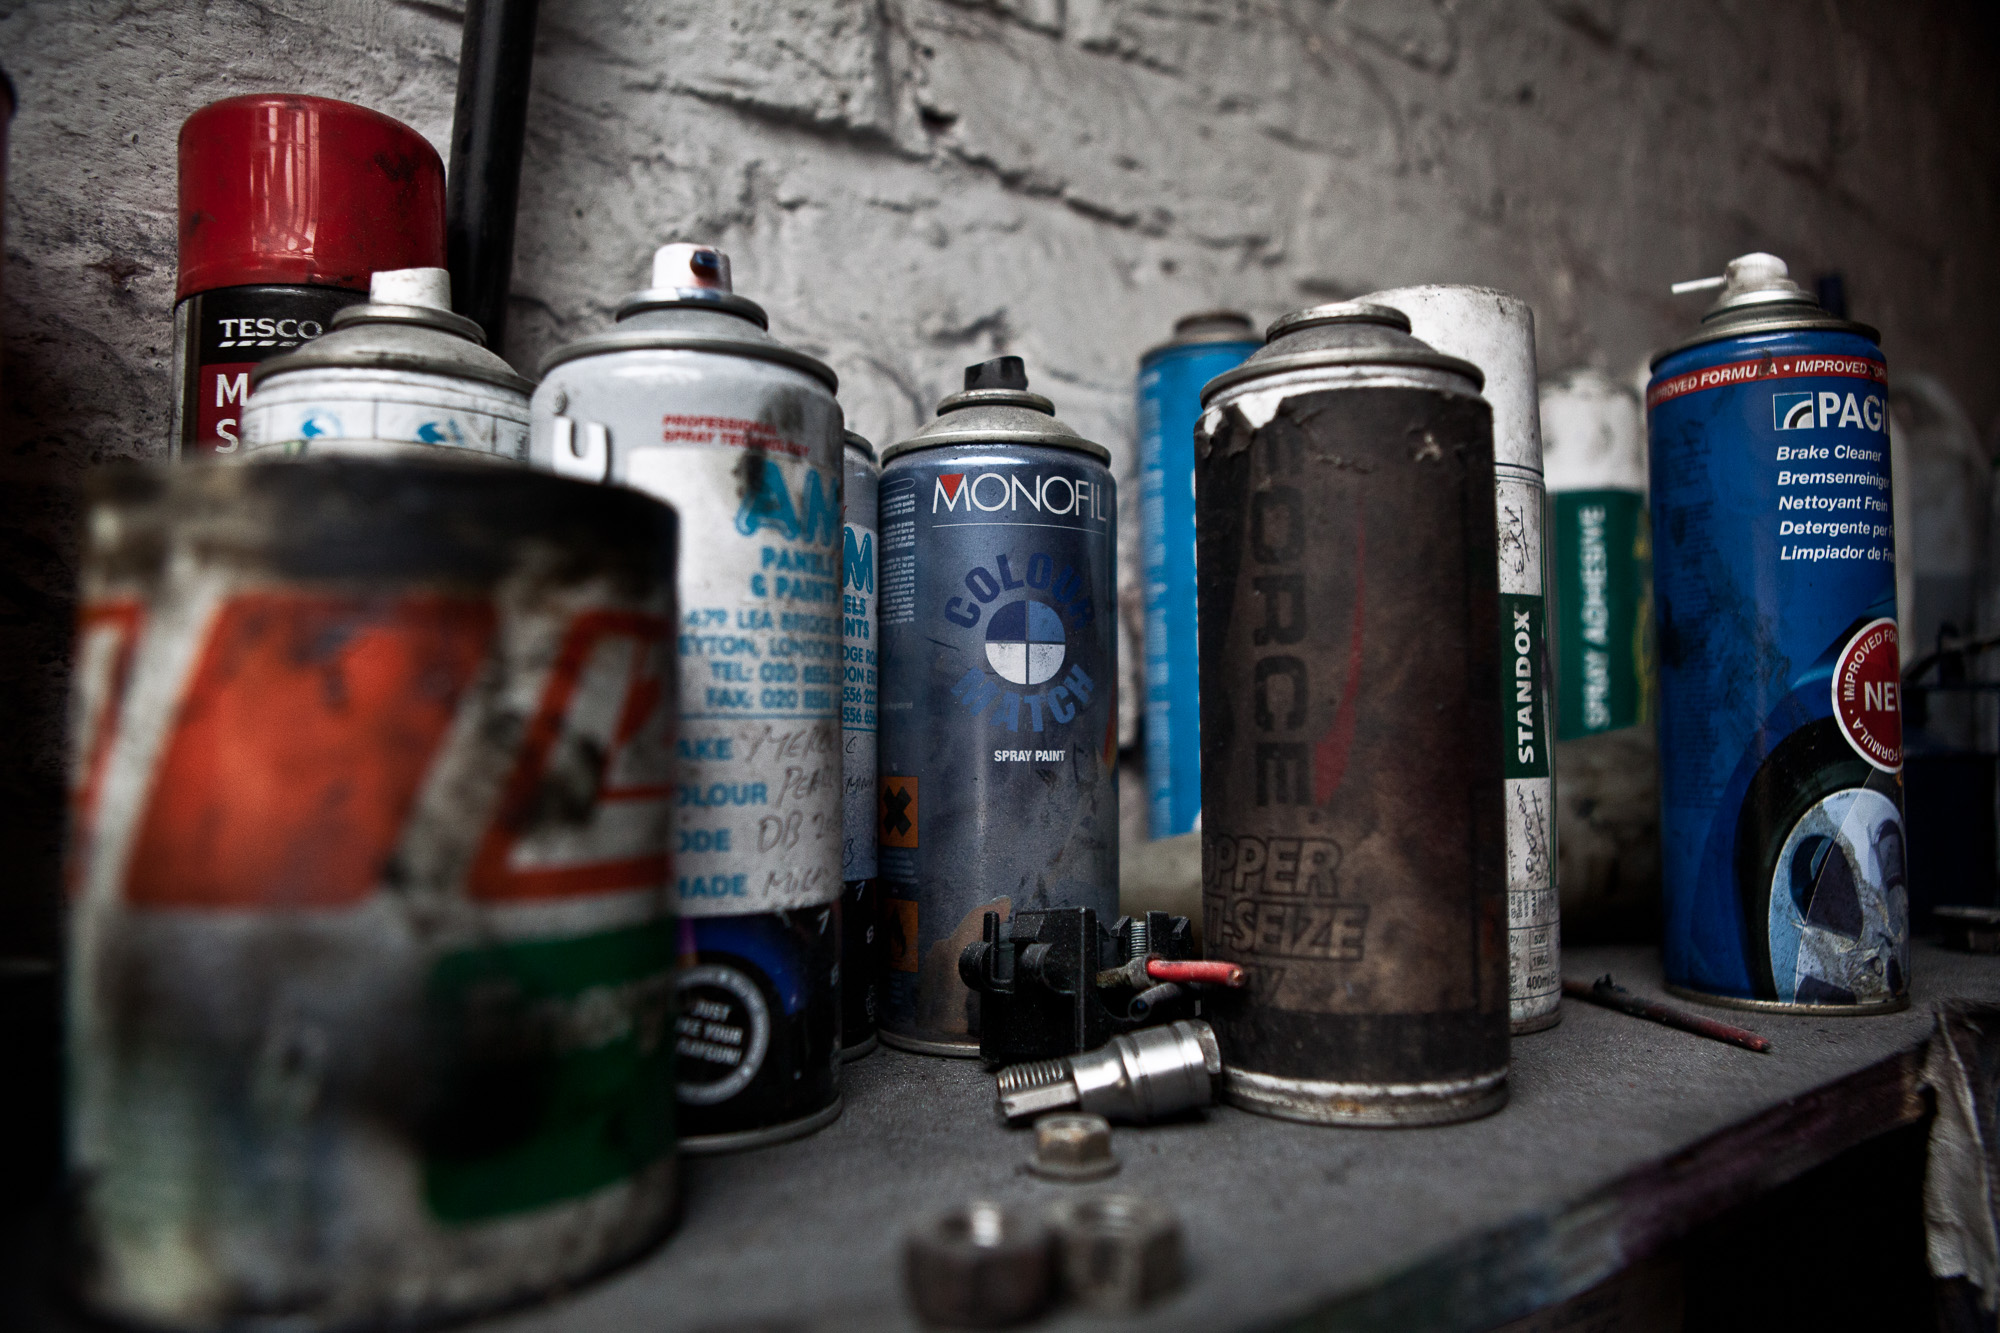 Cans of spray paint and lubricating oil are randomly placed on a shelves all over the garage within easy reach of the main working area, with nothing being wasted and everything put to good use, as the business runs on a very tight margin.